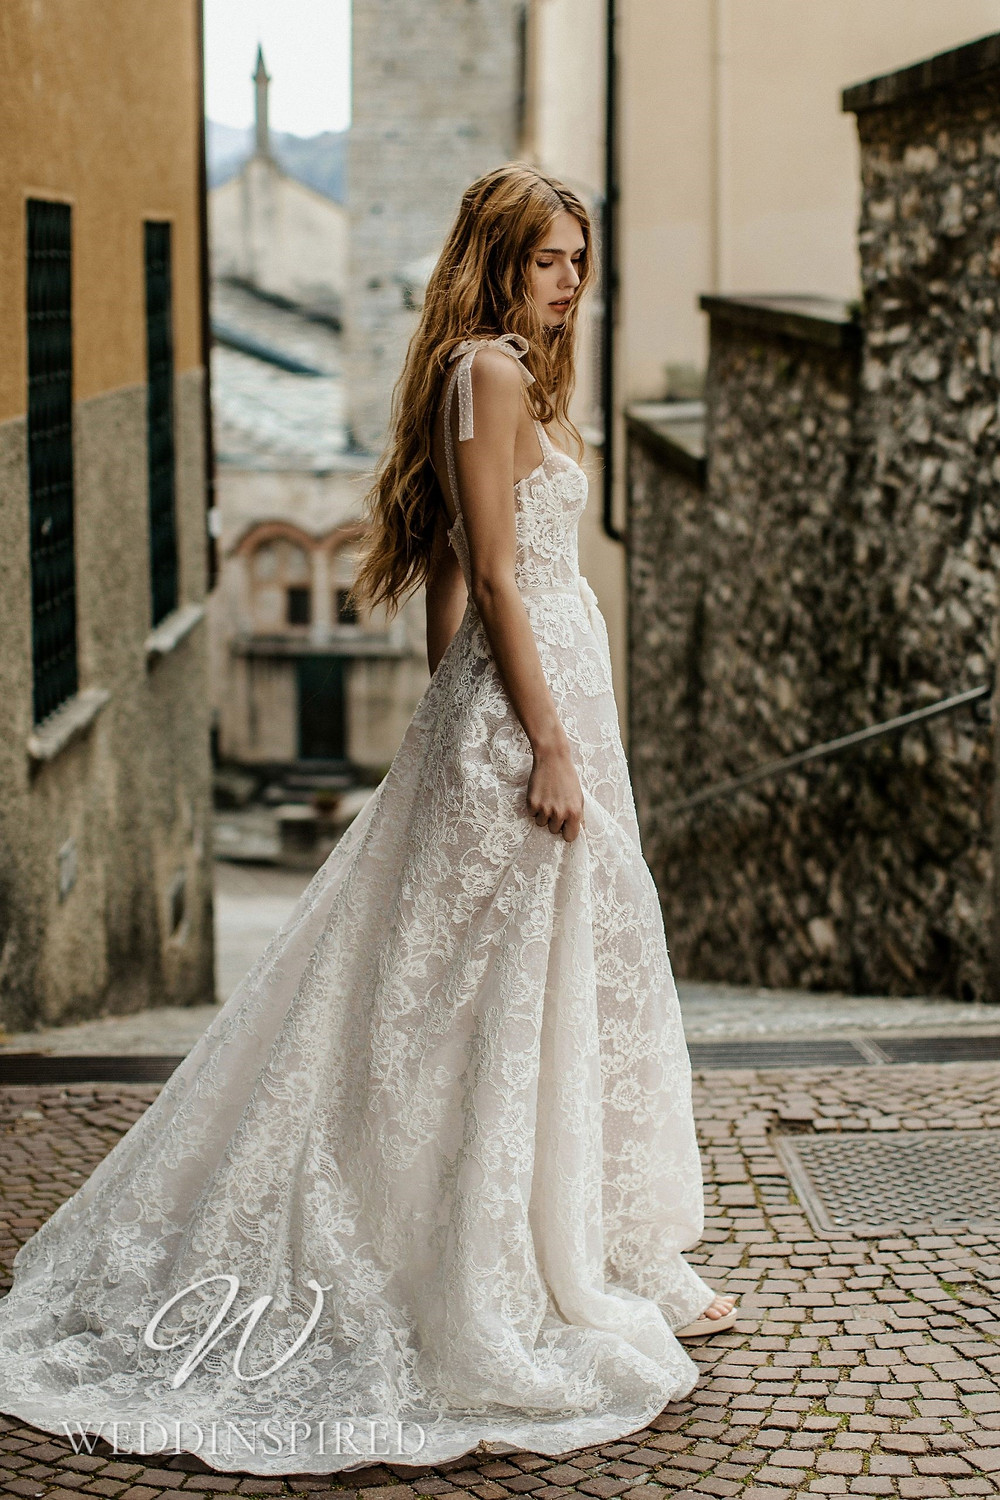 A Berta 2022 lace and tulle A-line wedding dress